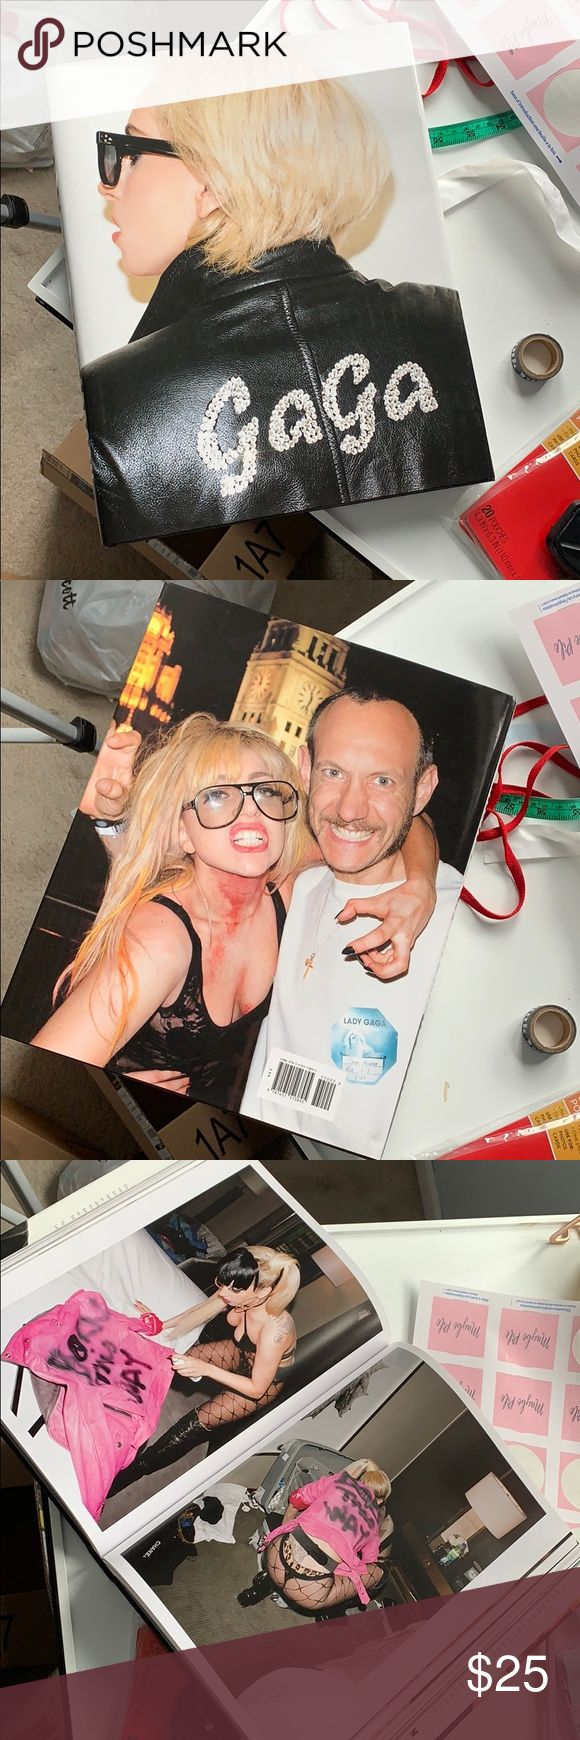 Lady Gaga x Terry Richardson Coffee Table Book Excellent condition; only used for display Accents Coffee Table Books | Terry richardson. Coffee ...